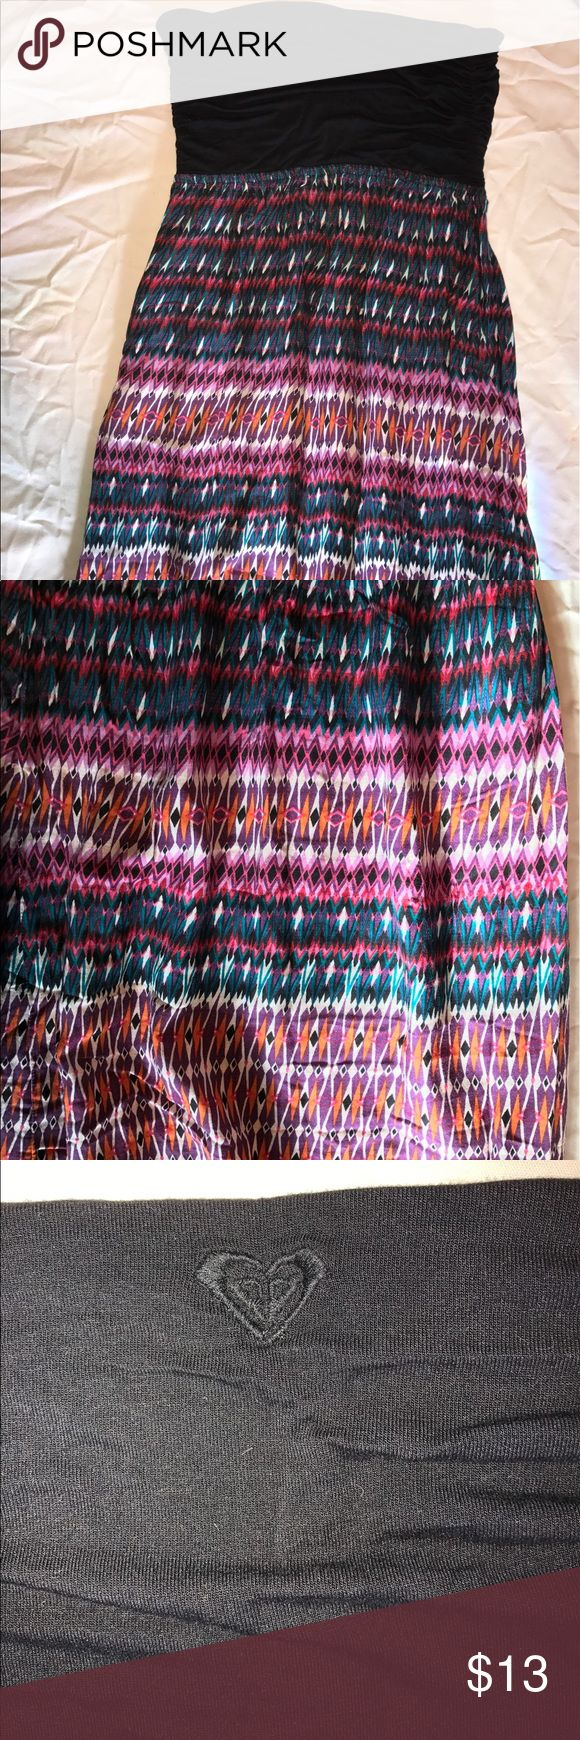 ROXY Strapless Maxi Dress ROXY strapless maxi dress. Never been worn. Looks super cute as a swim suit coverup or just a casual dress. Perfect condition. No flaws! Open to Offers!!! Roxy Dresses Maxi